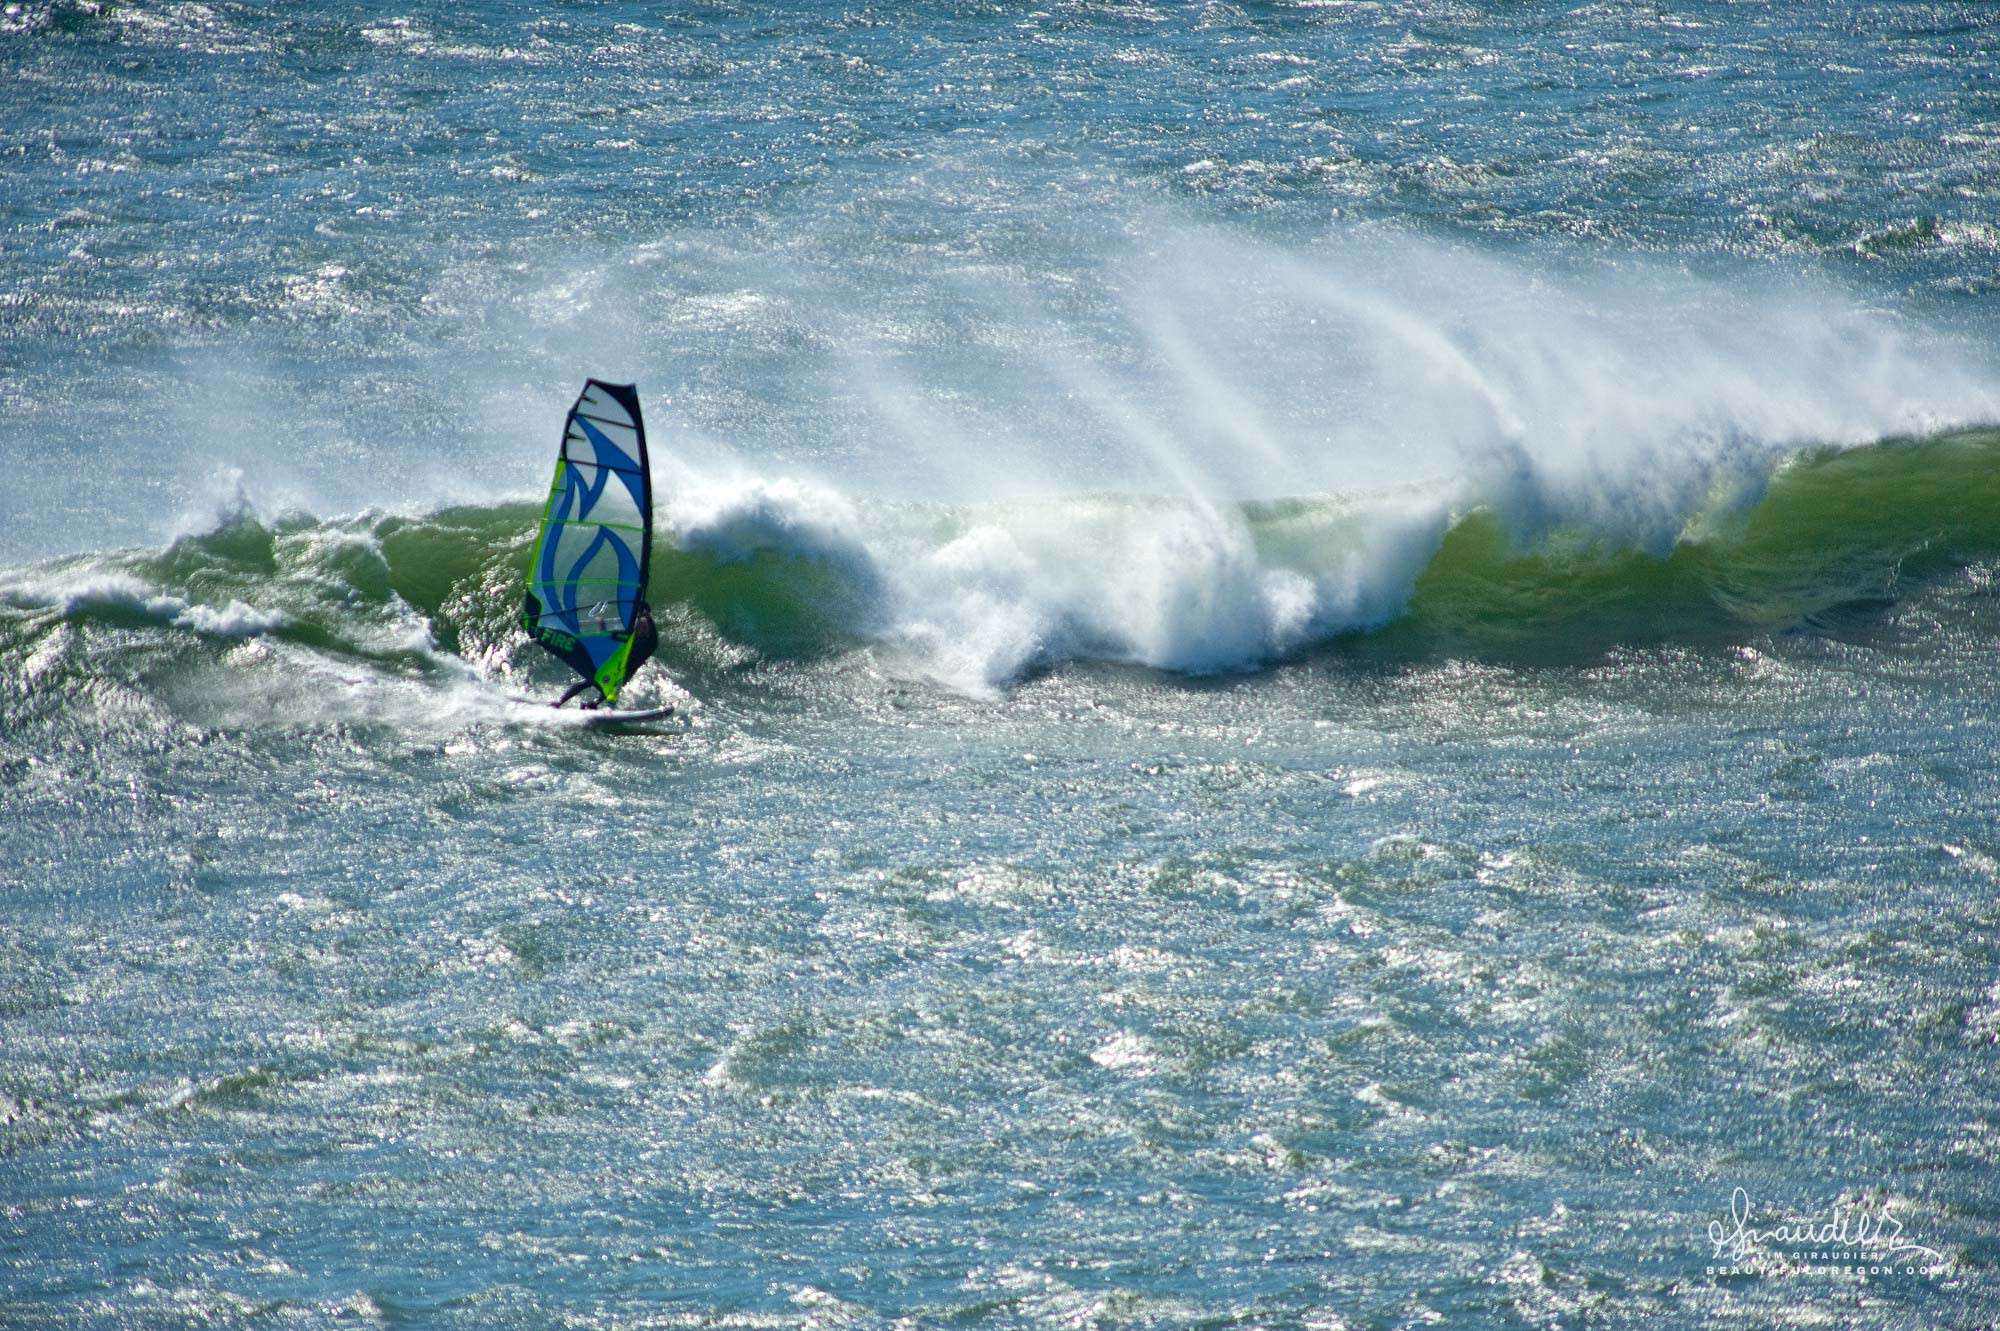 A windsurfer rides the wild waves off Cape Blanco's south point. Cape Blanco State Park, Curry County, Oregon South Coast.